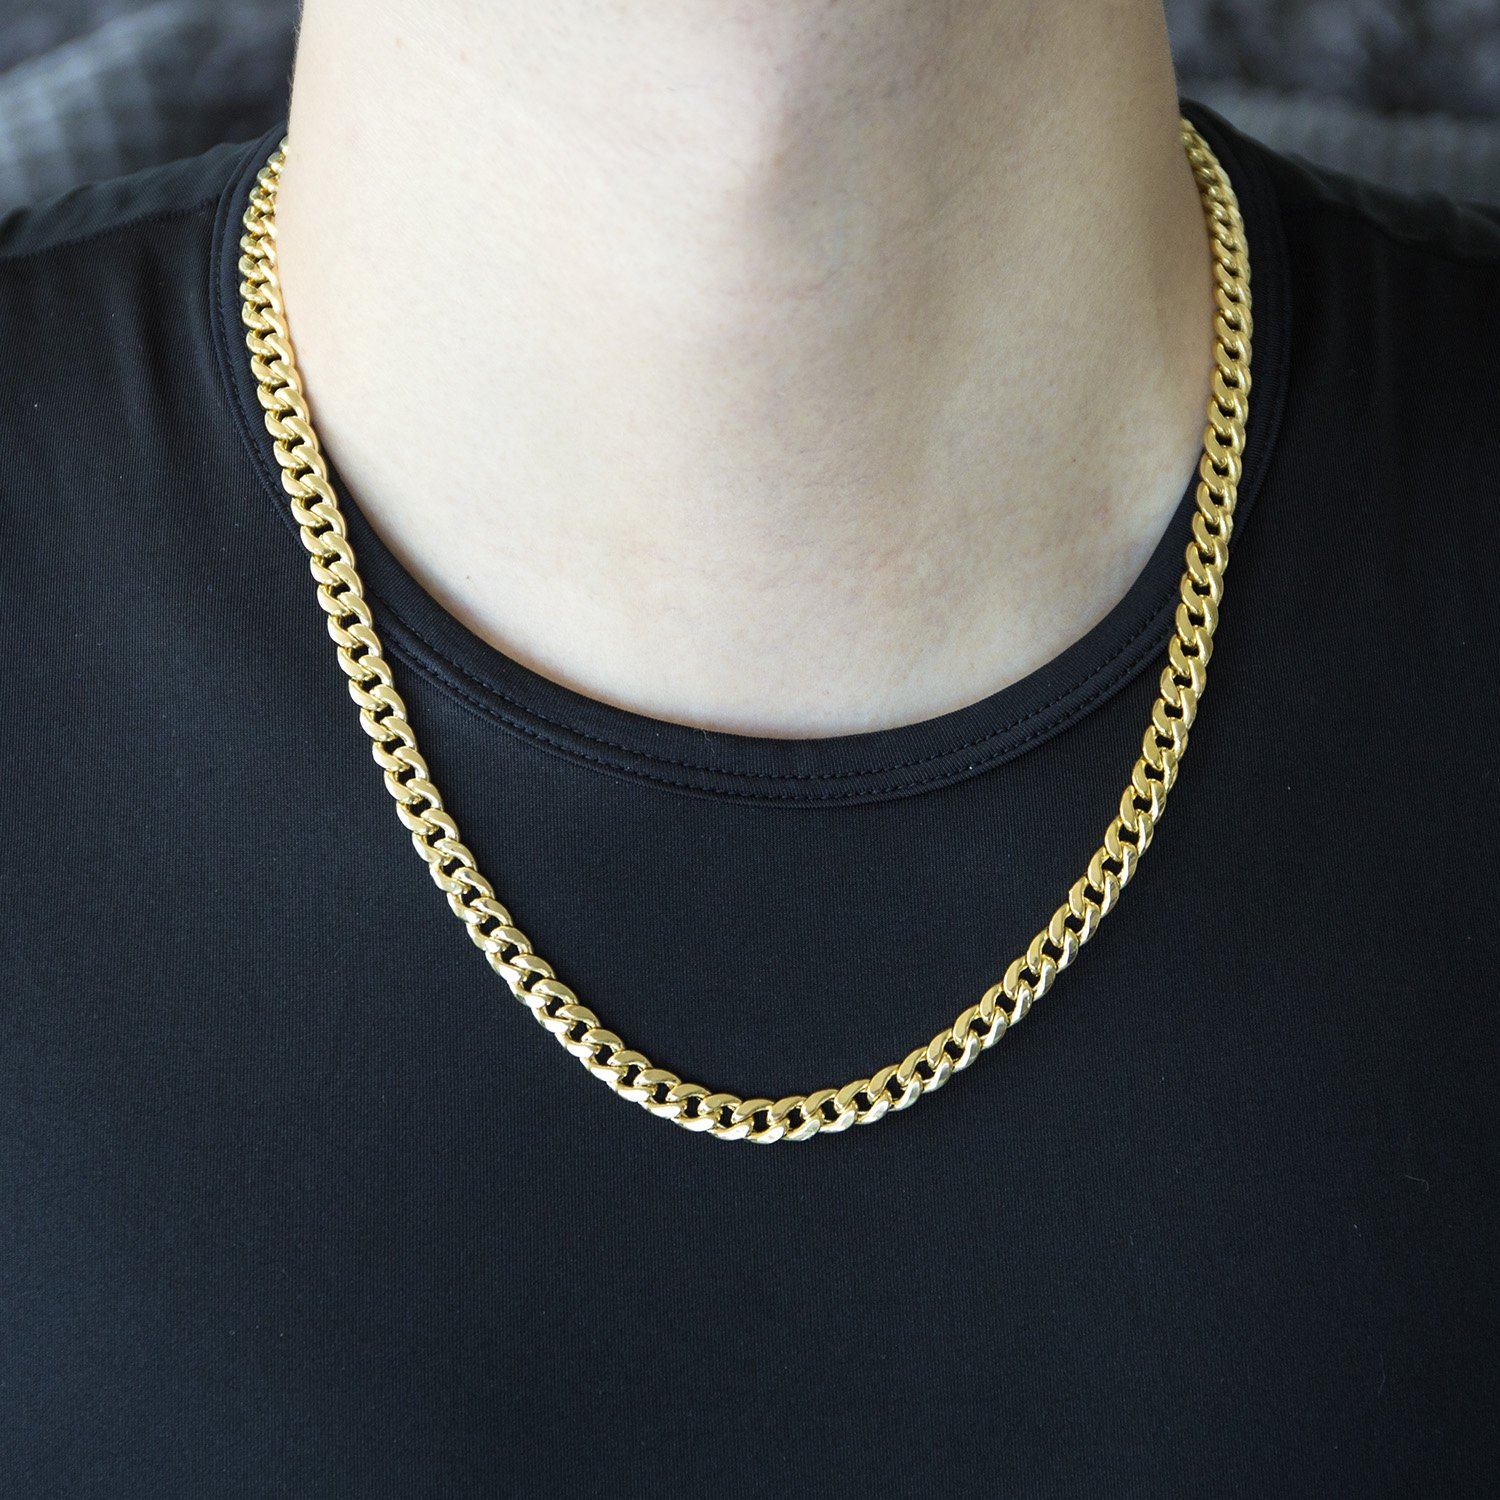 necklace men cuban s products mens chai yellow link women chain universal gold jewels solid